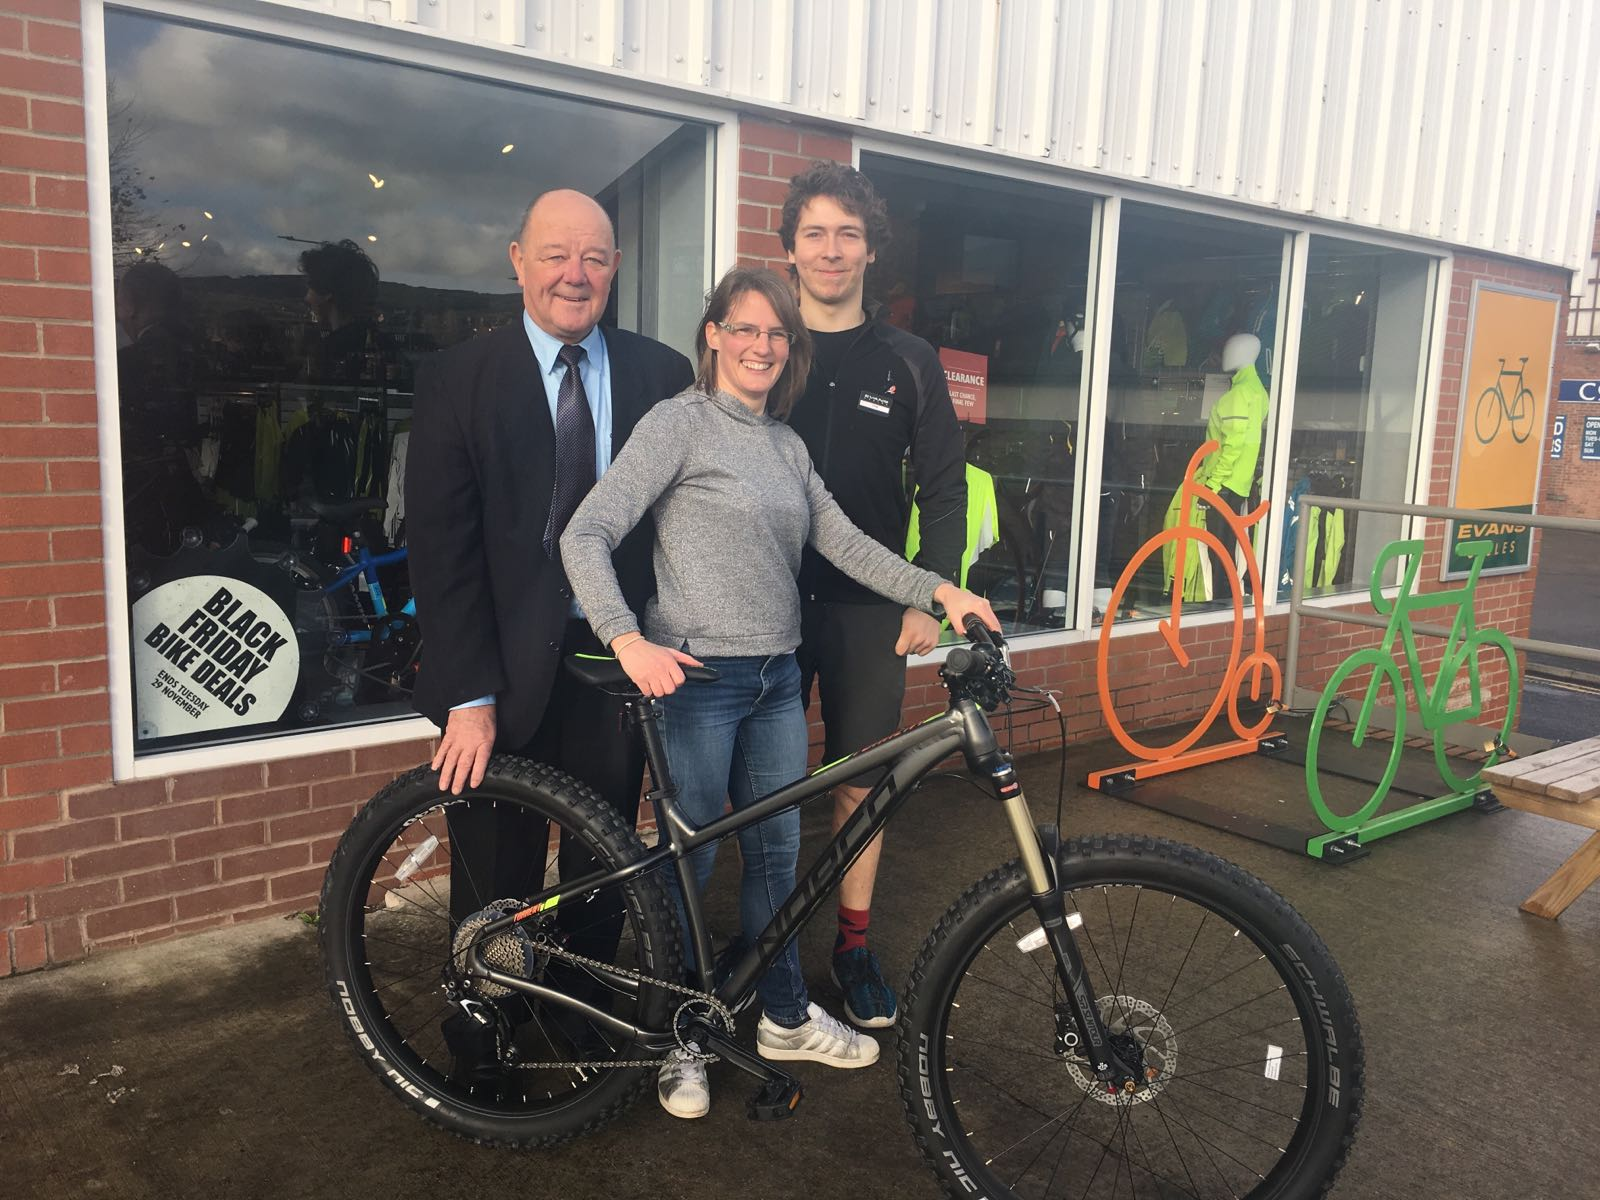 Councillor David Brown and Mandy Willett with Craig Marden from Evans Cycles